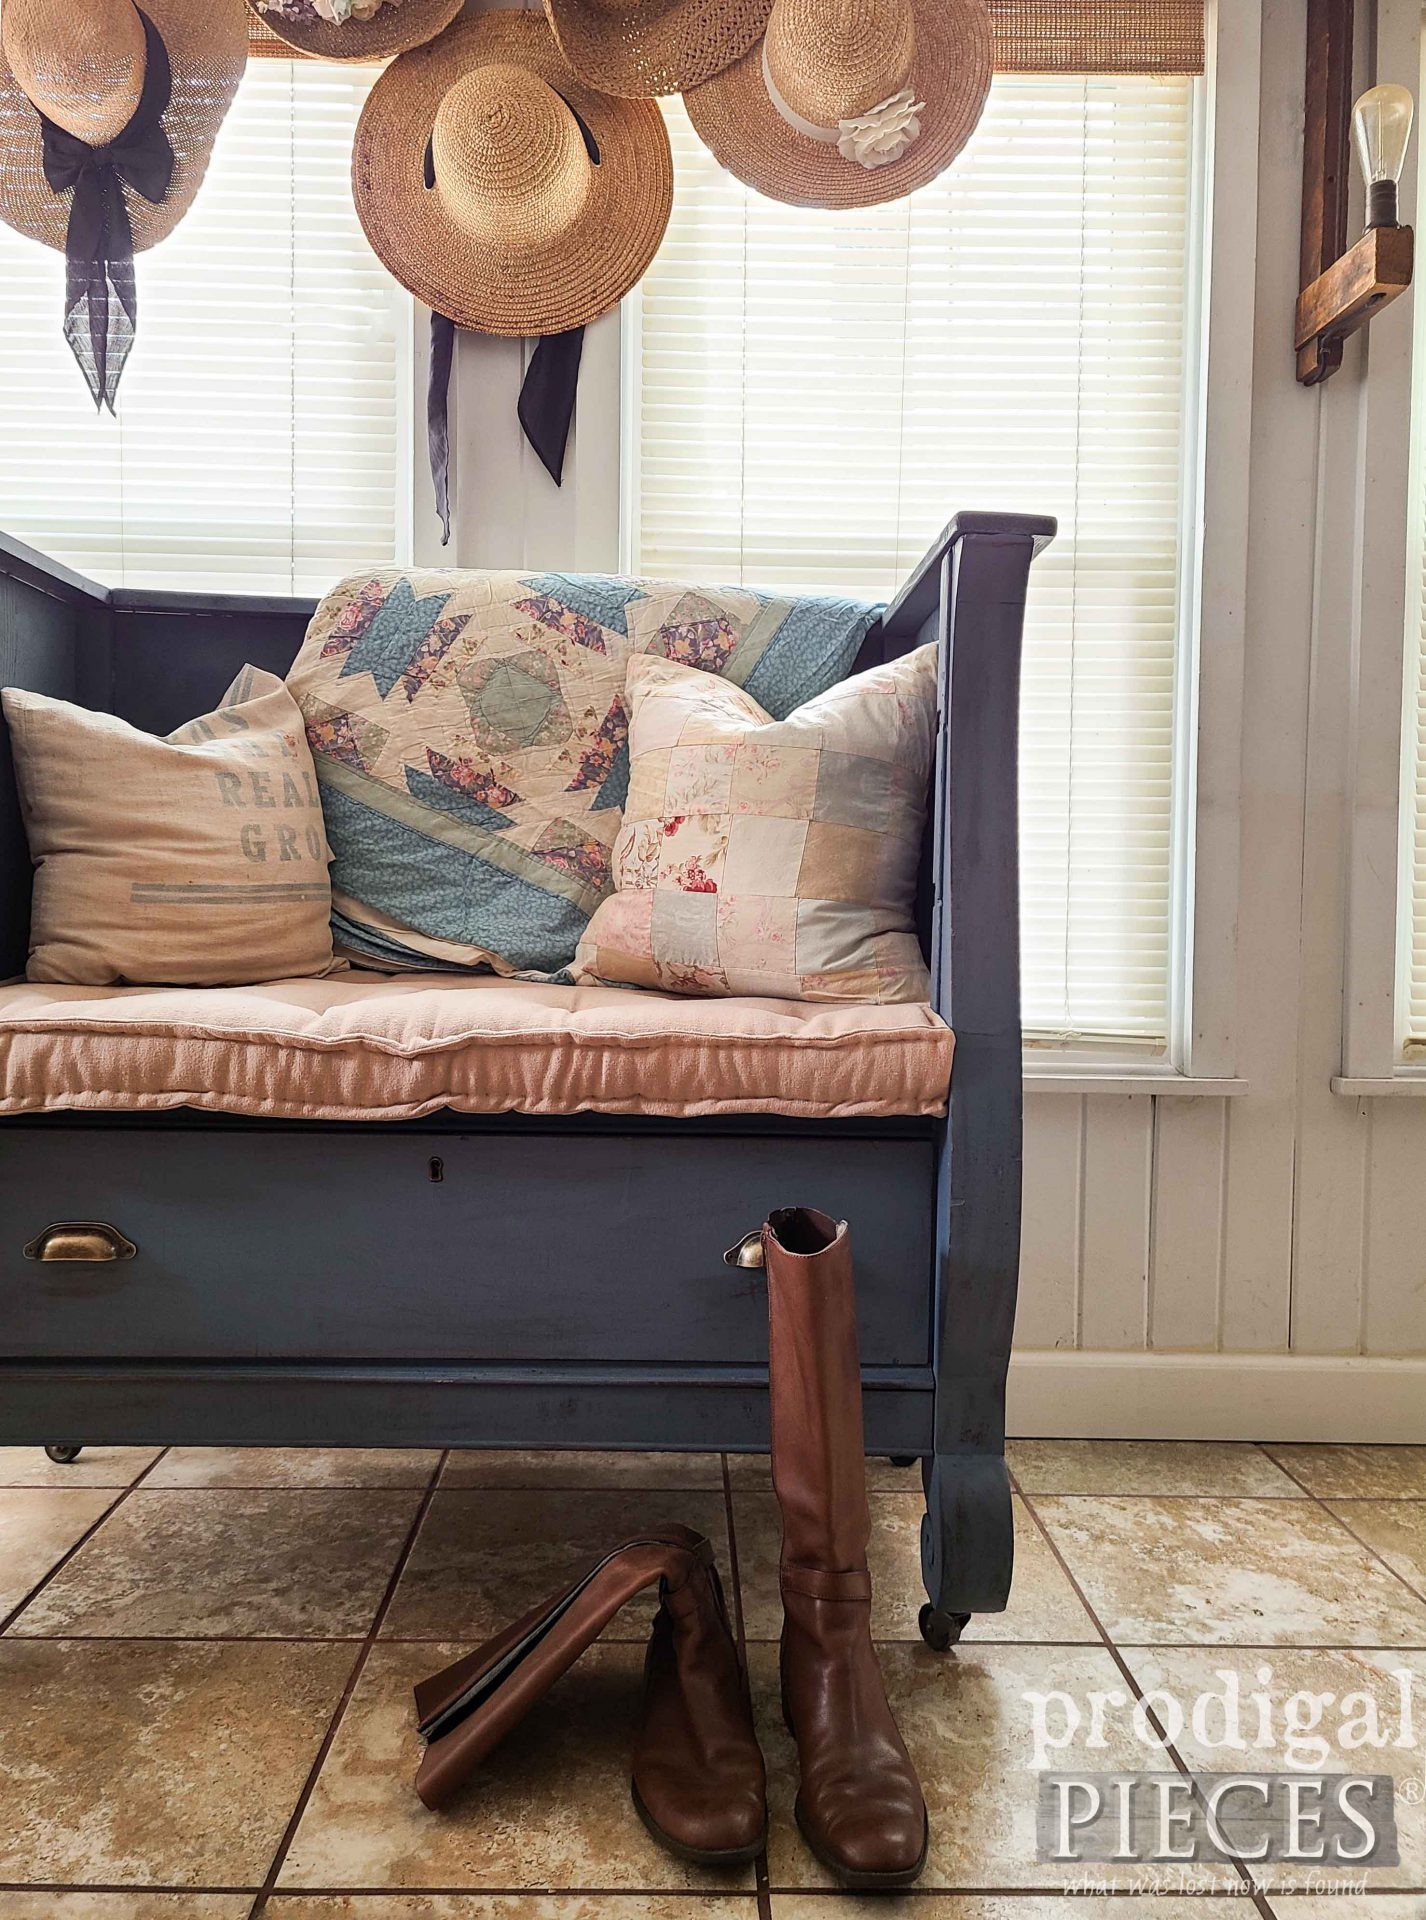 Rustic Upcycled Farmhouse Style Bench with French Tufted Mattress by Larissa of Prodigal Pieces | prodigalpieces.com #prodigalpieces #upcycled #home #homedecor #diy #furniture